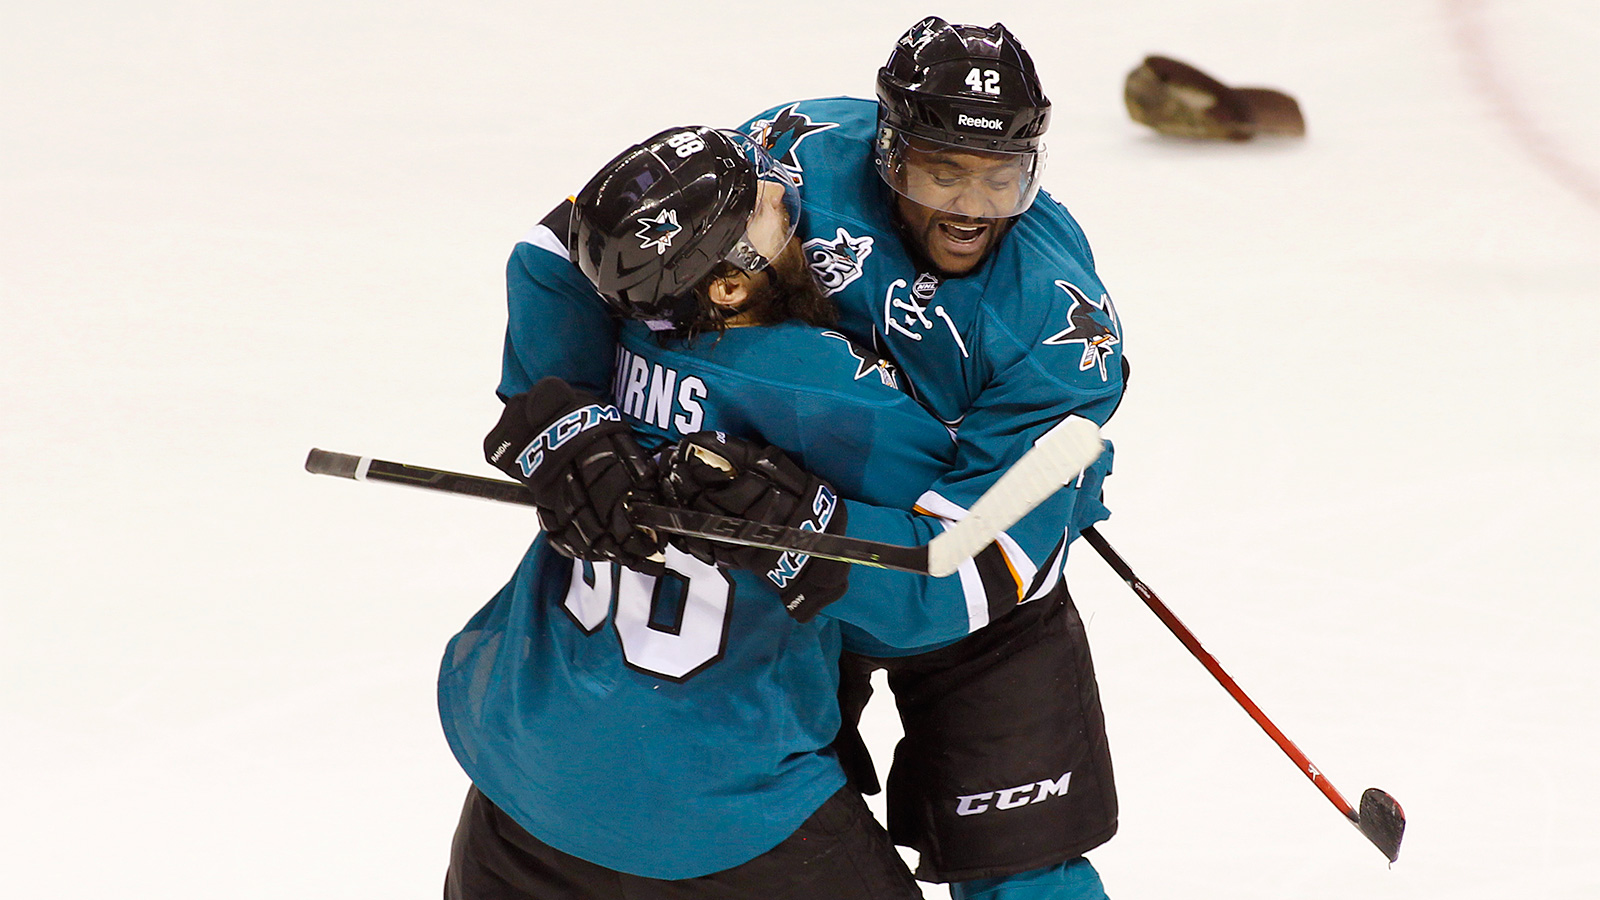 Ward has hat trick as Sharks beat Hurricanes to snap skid